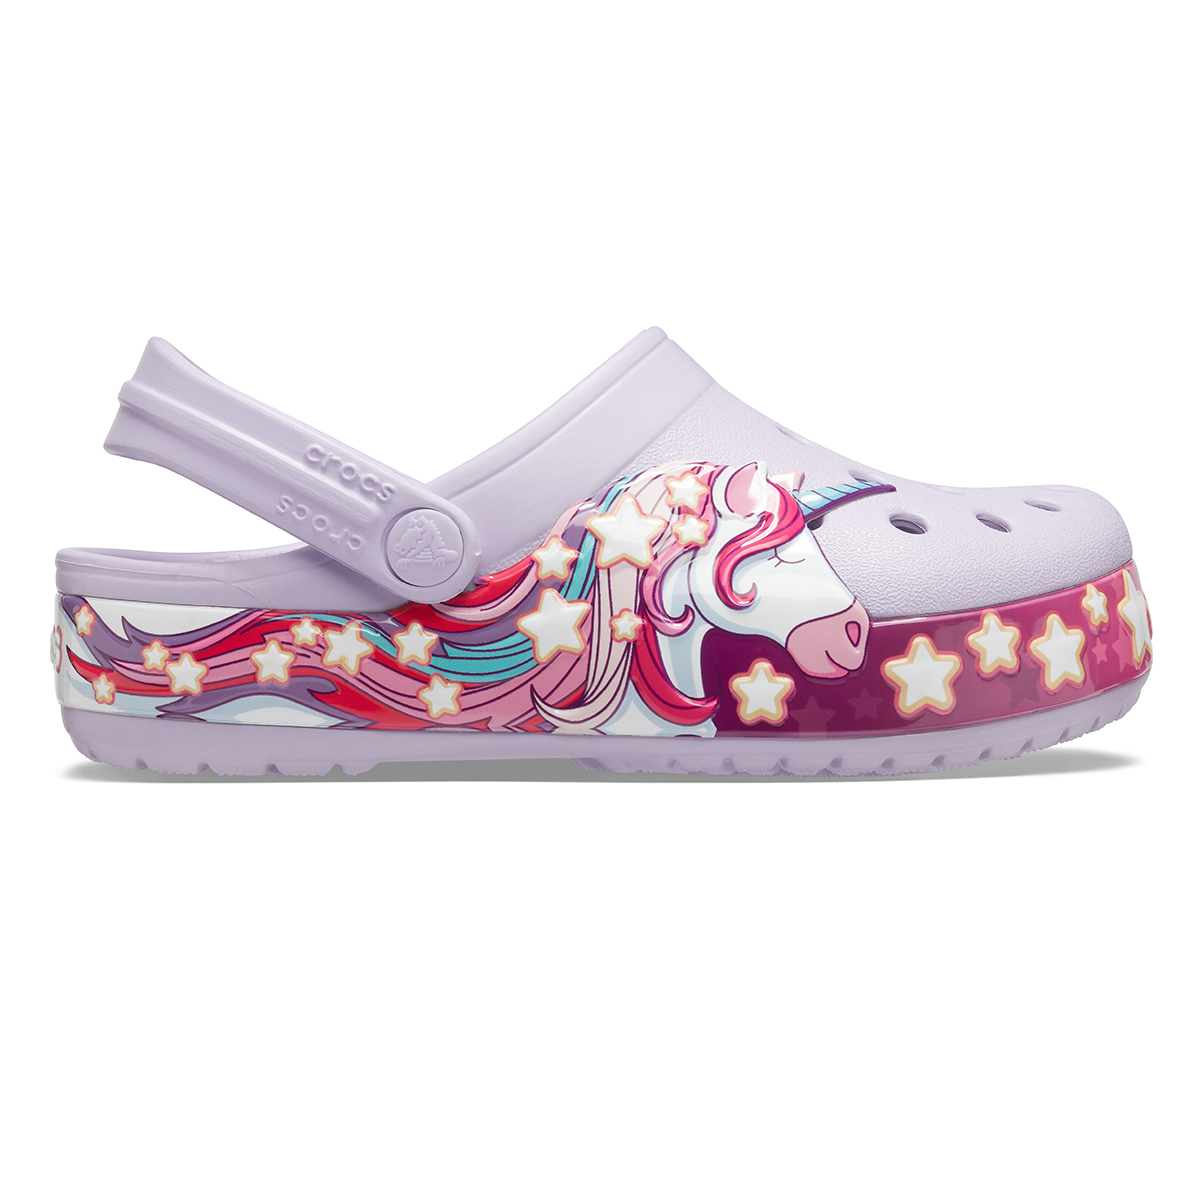 Crocs FunLab Unicorn Band Cg K - Lavanta